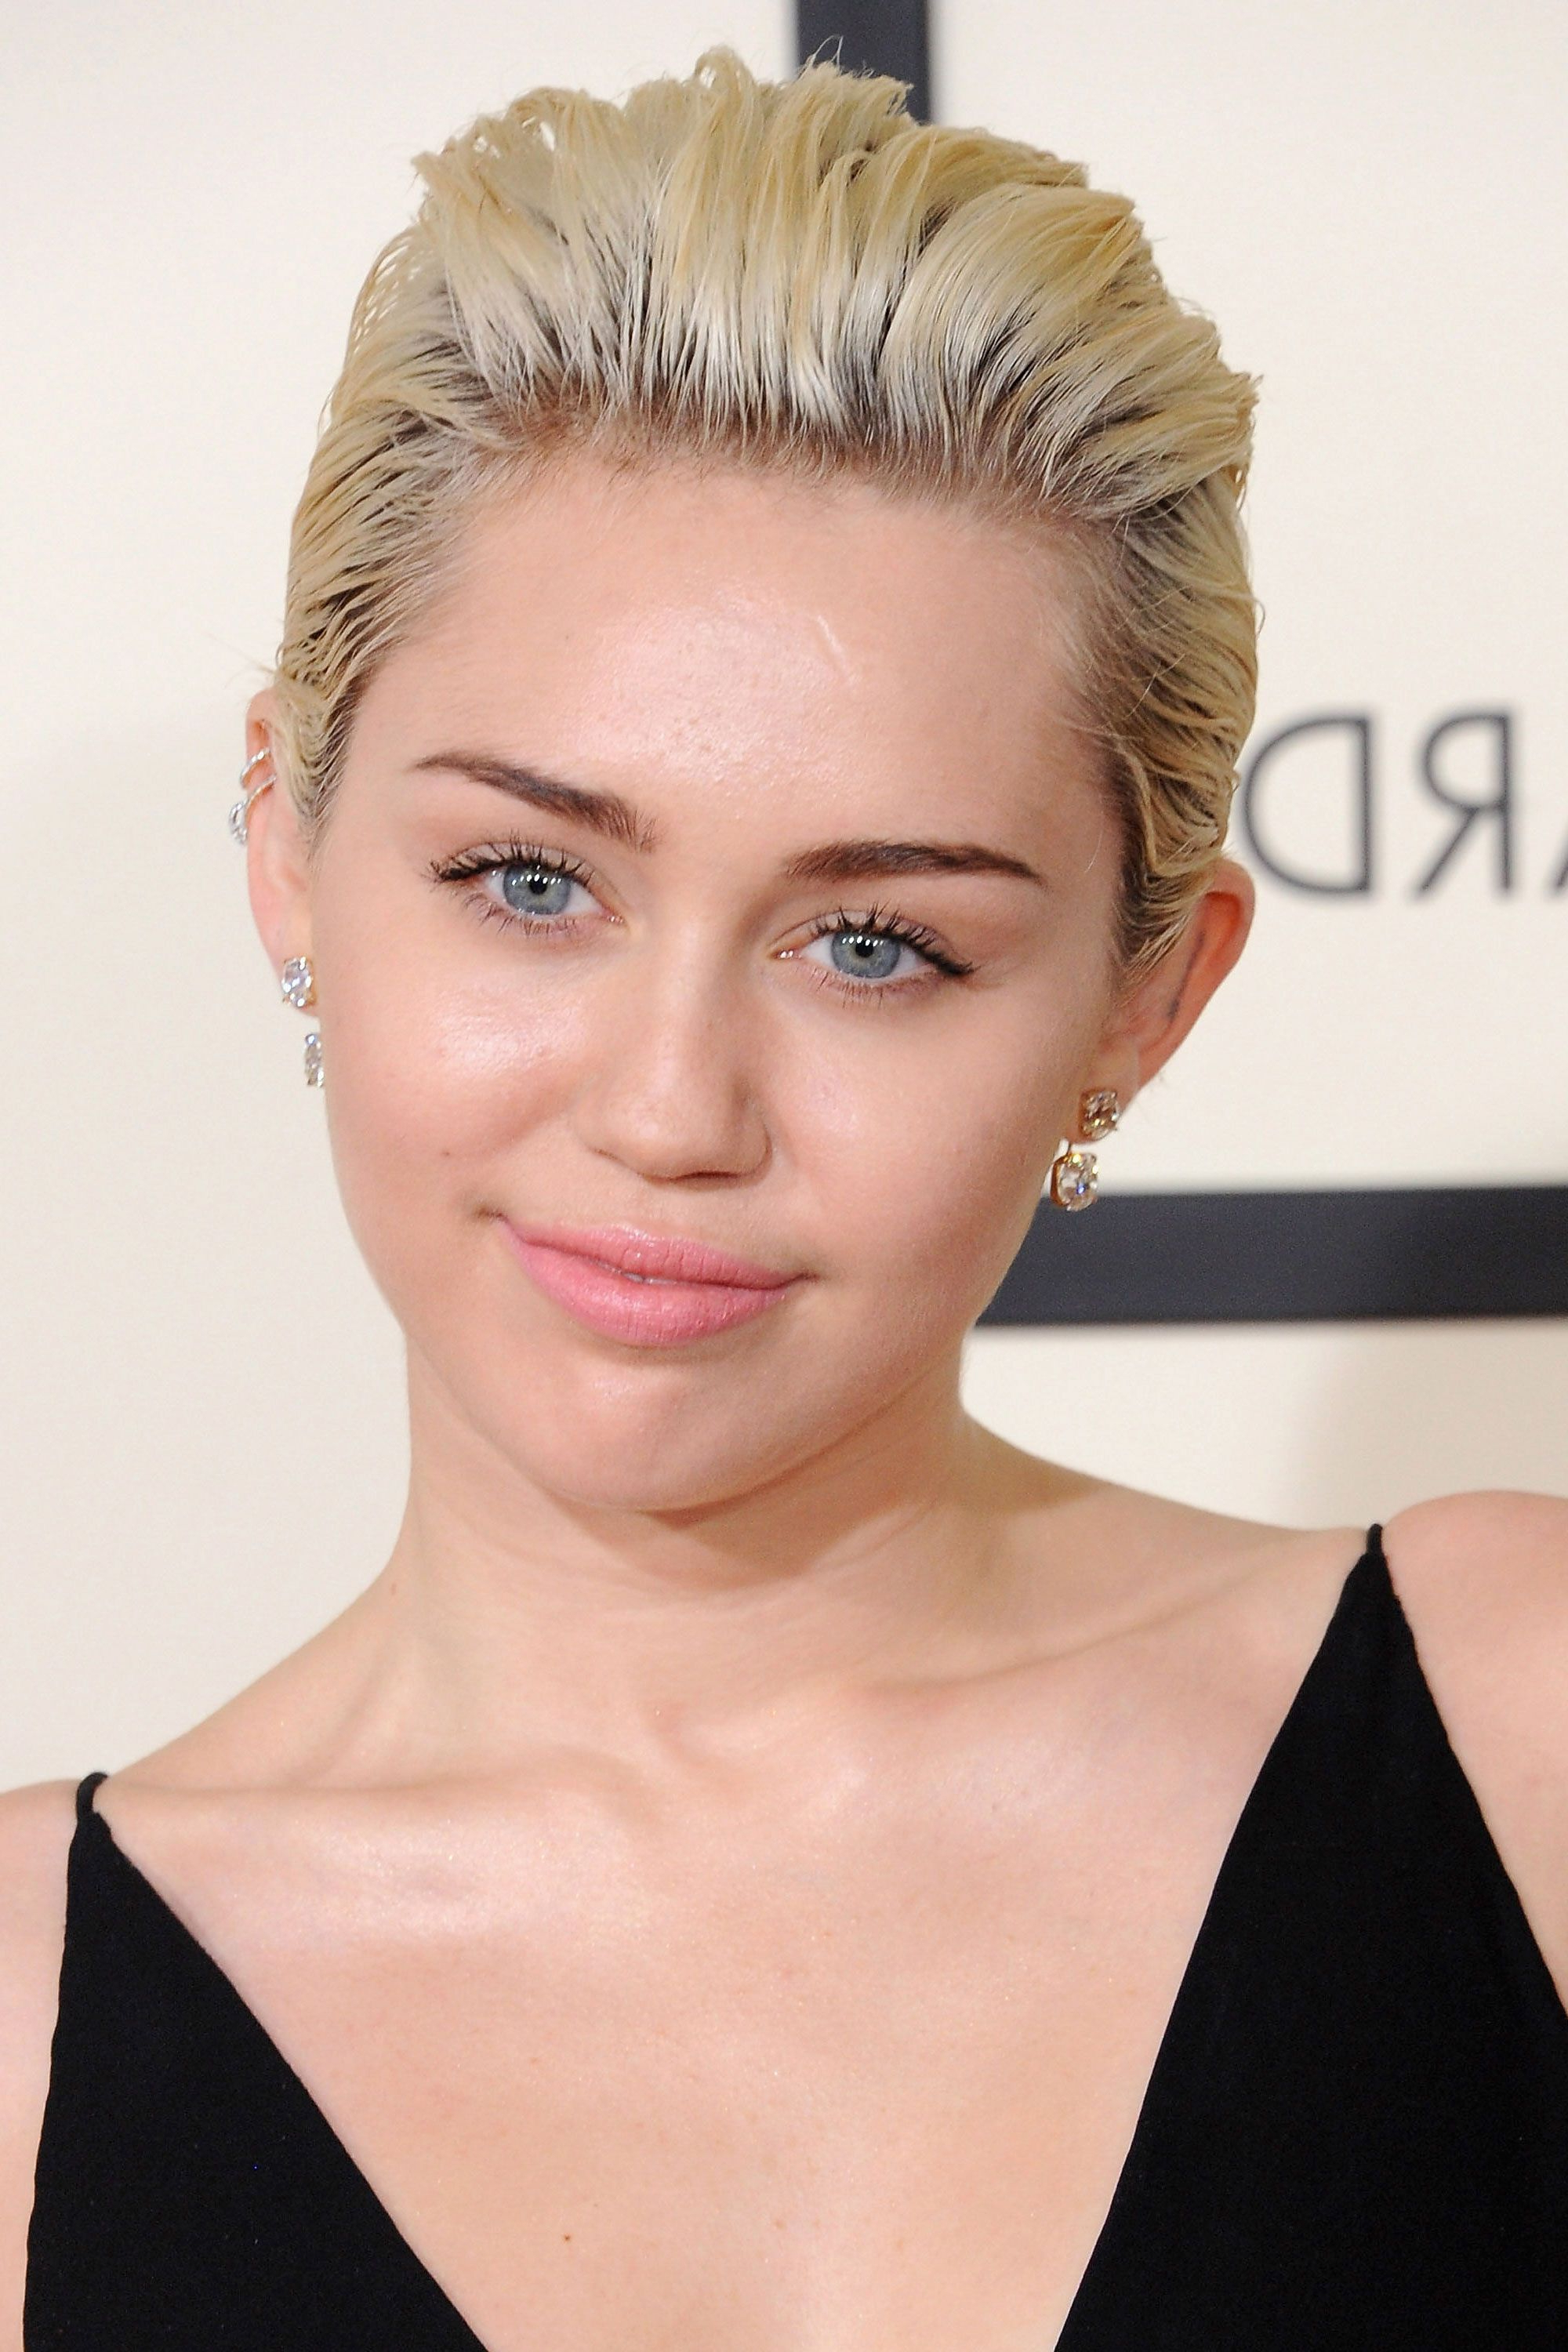 87 Cute Short Hairstyles & Haircuts – How To Style Short Hair Inside Miley Cyrus Short Haircuts (View 11 of 25)